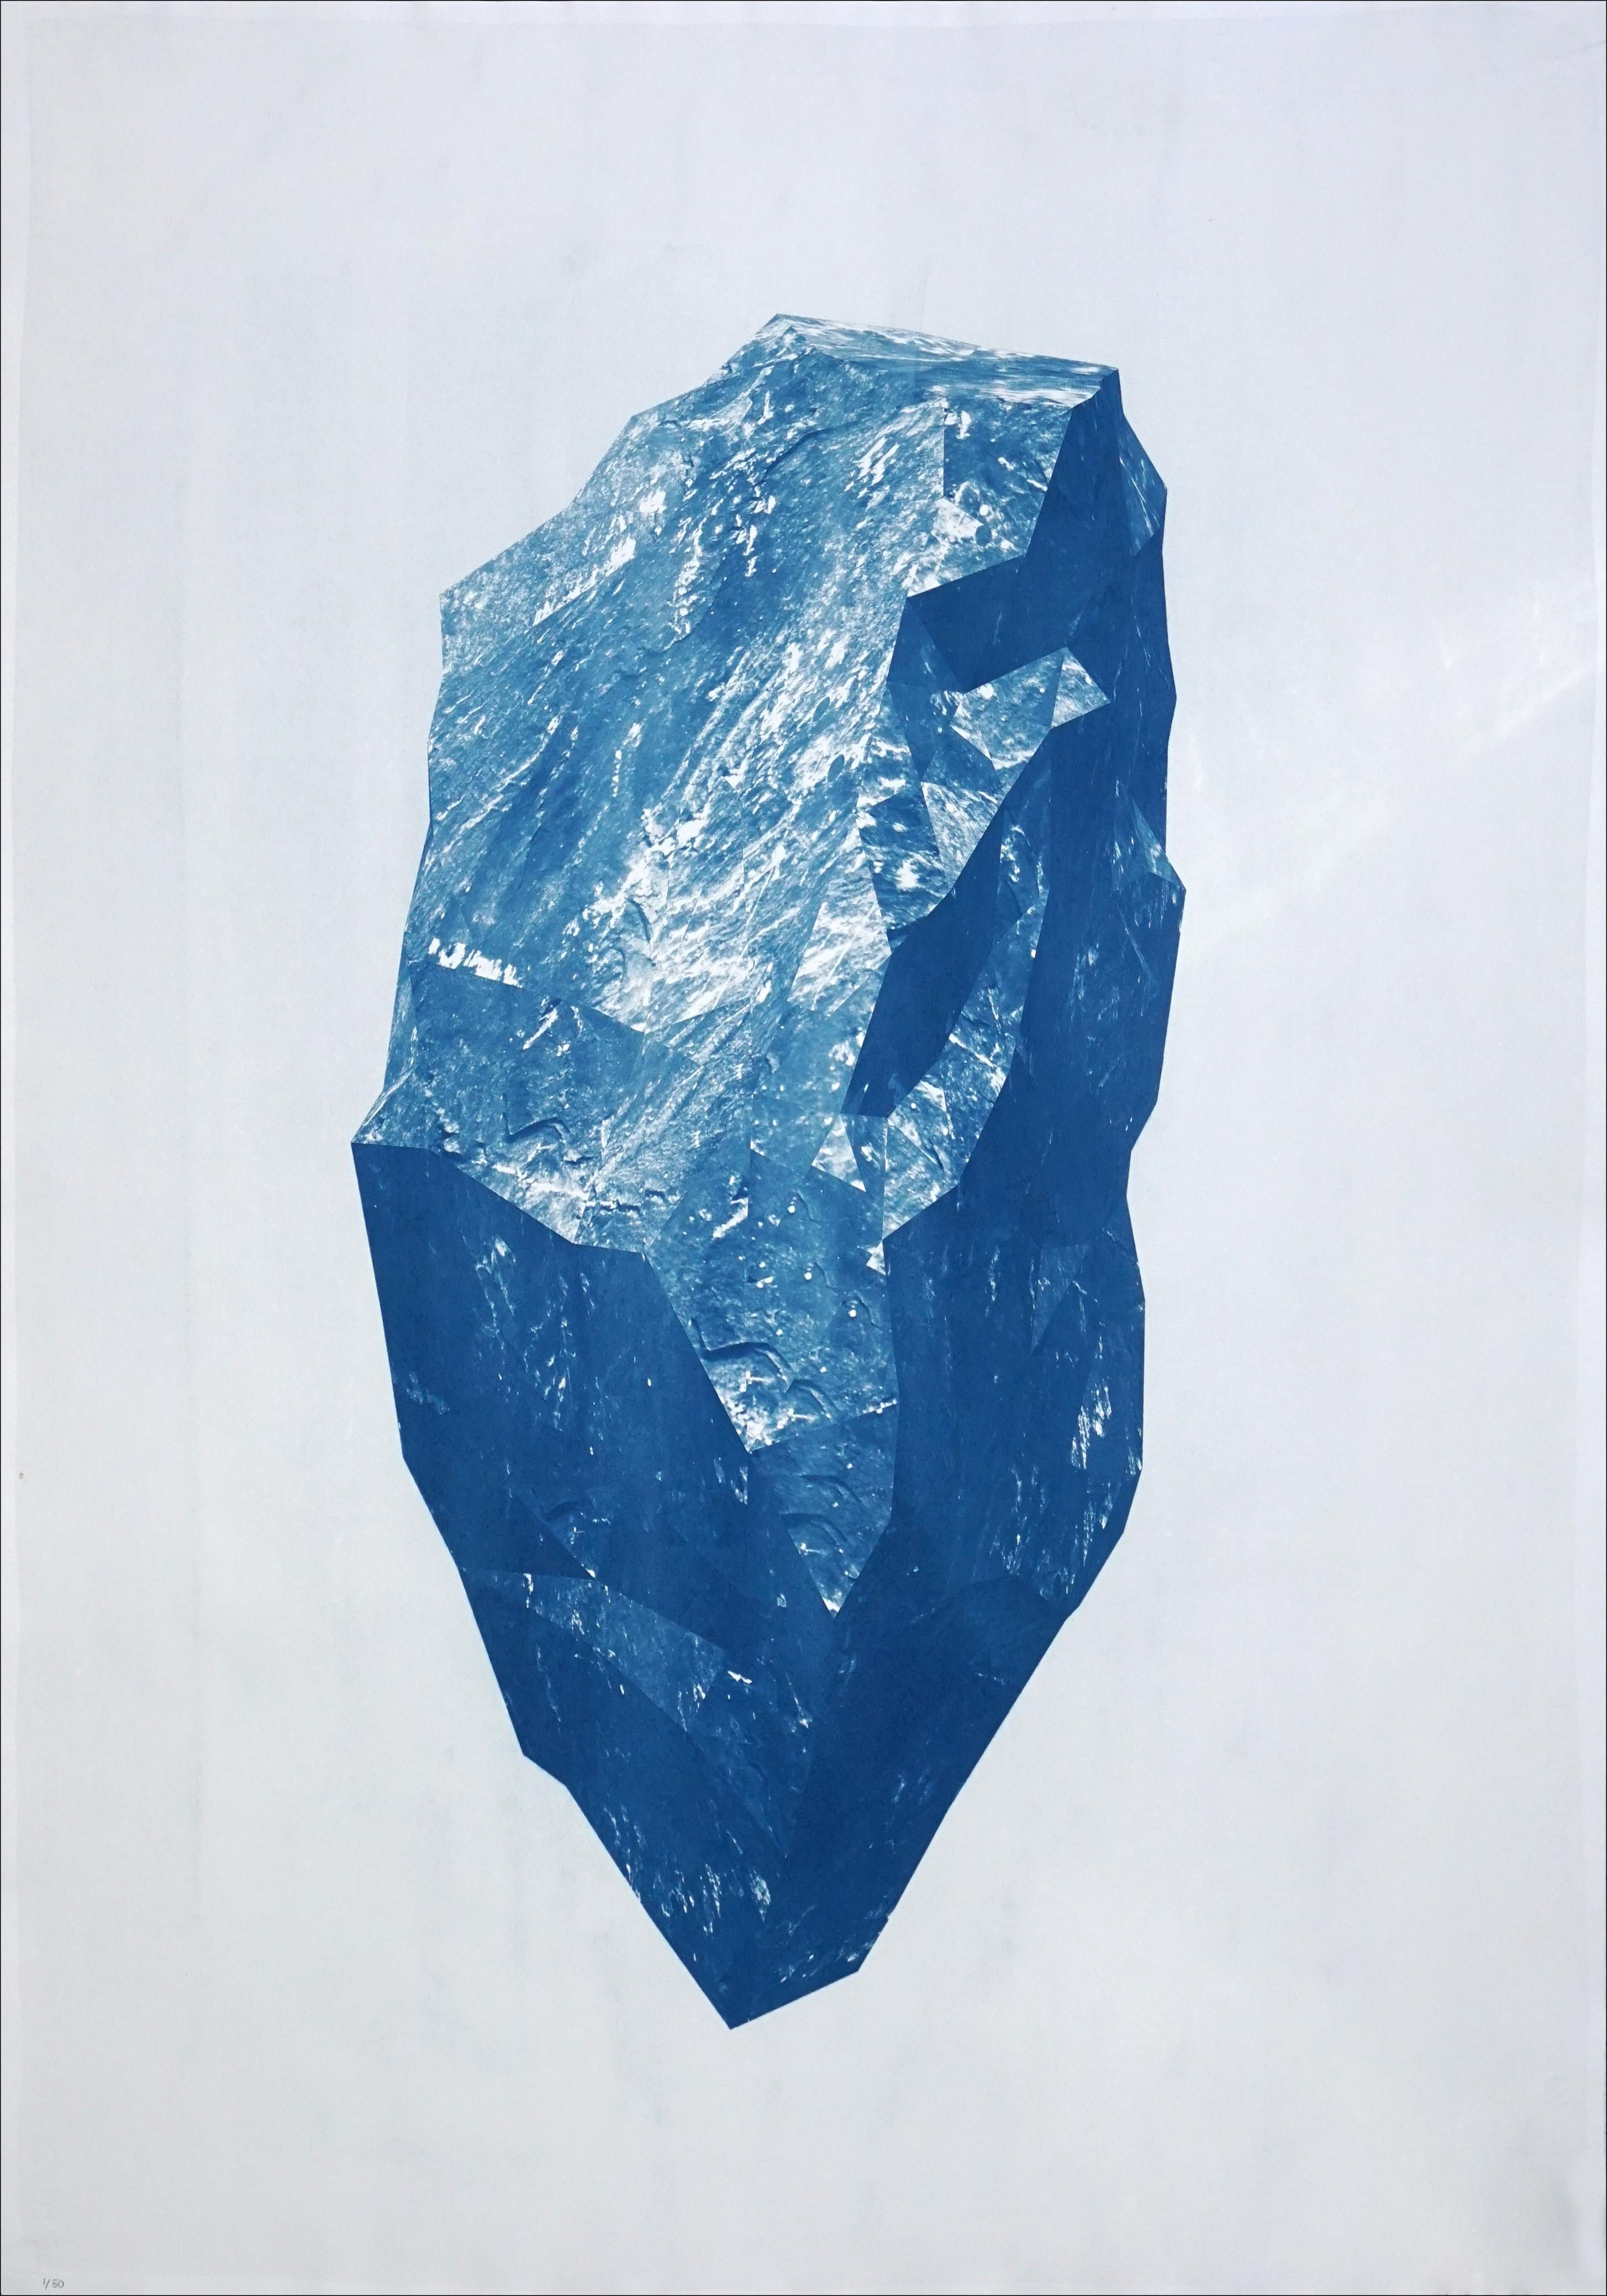 Sculpted Mineral Render, Cyanotype on Watercolor Paper, 3D Geology Art, 2021